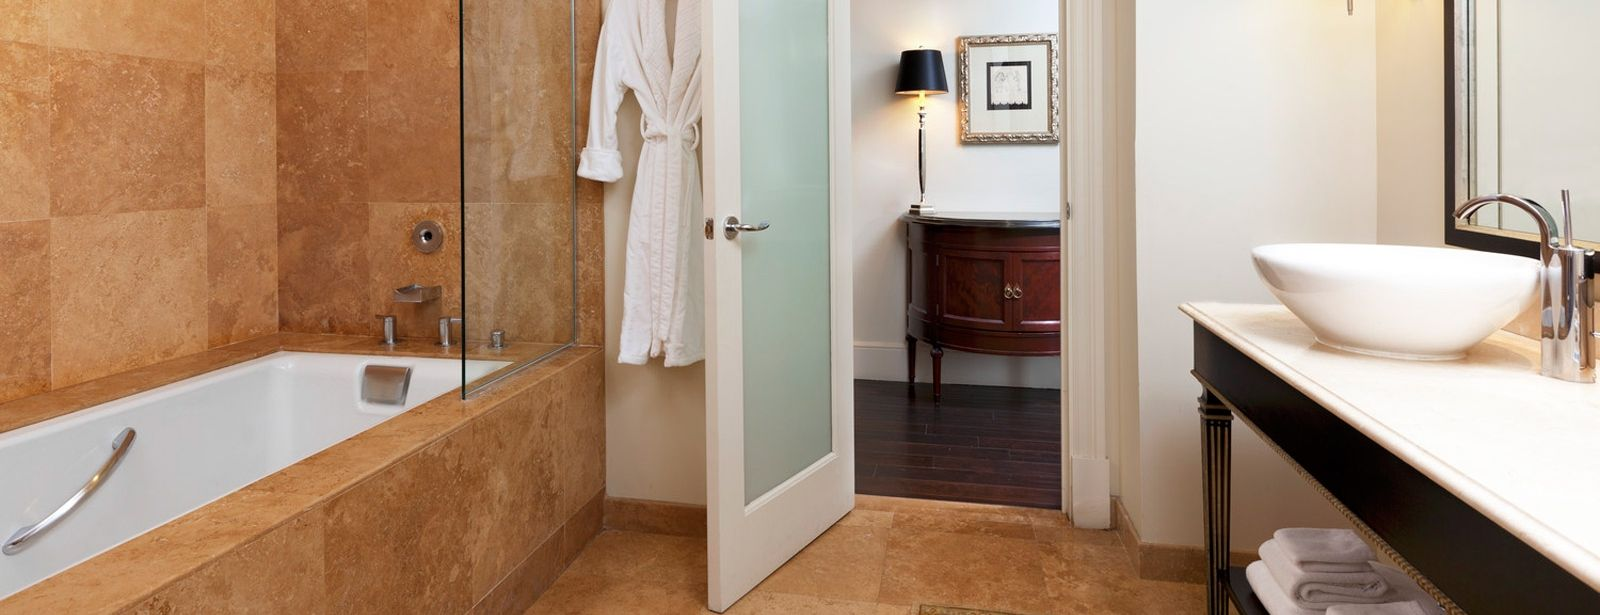 The US GRANT, A Luxury Collection Hotel, San Diego - Grand Deluxe with Tub